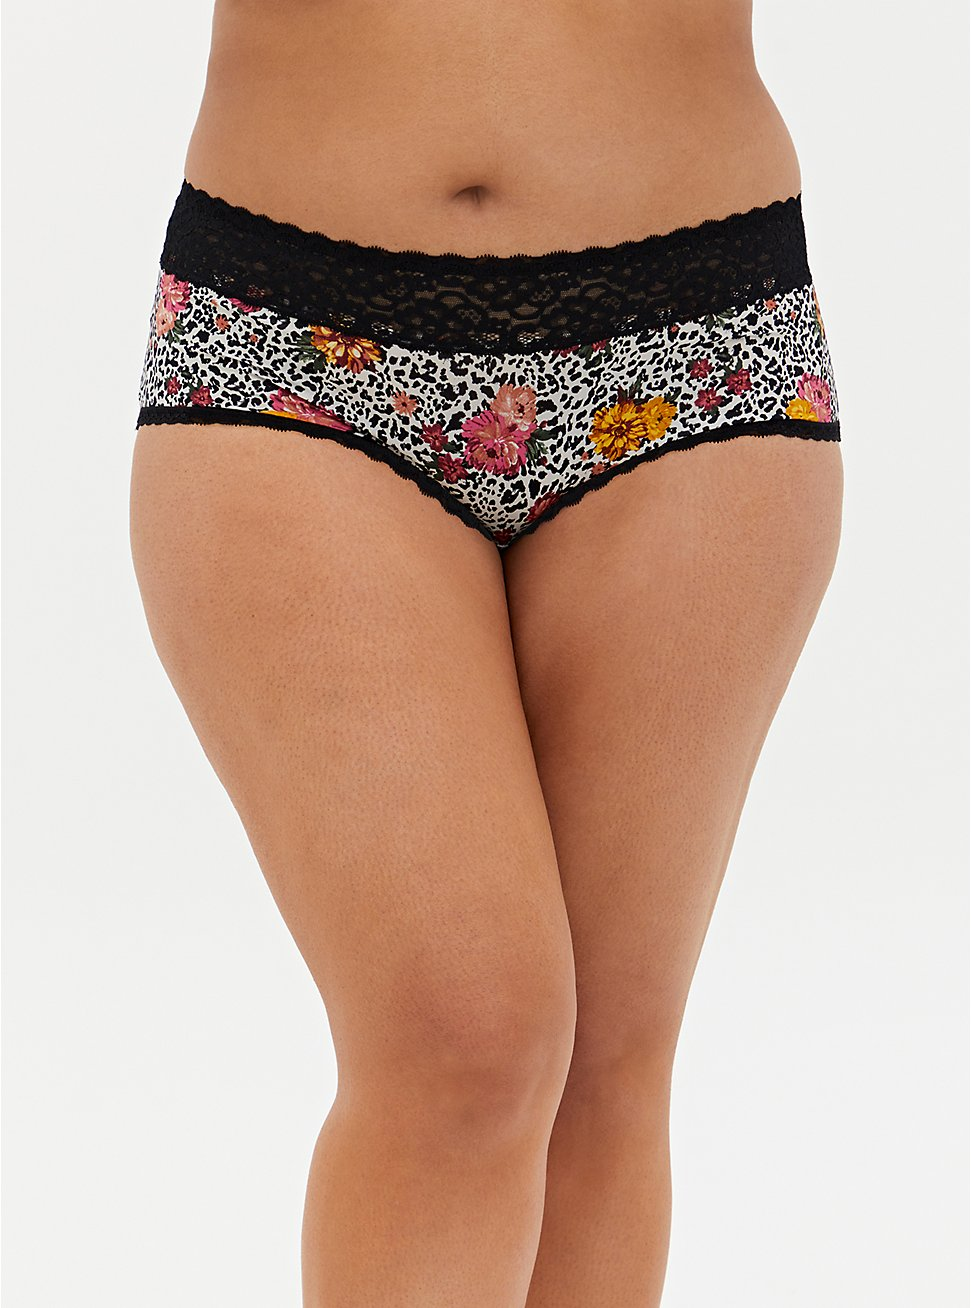 Plus Size White Leopard Floral Second Skin Cheeky Panty, WILD THINGS FLORAL, hi-res